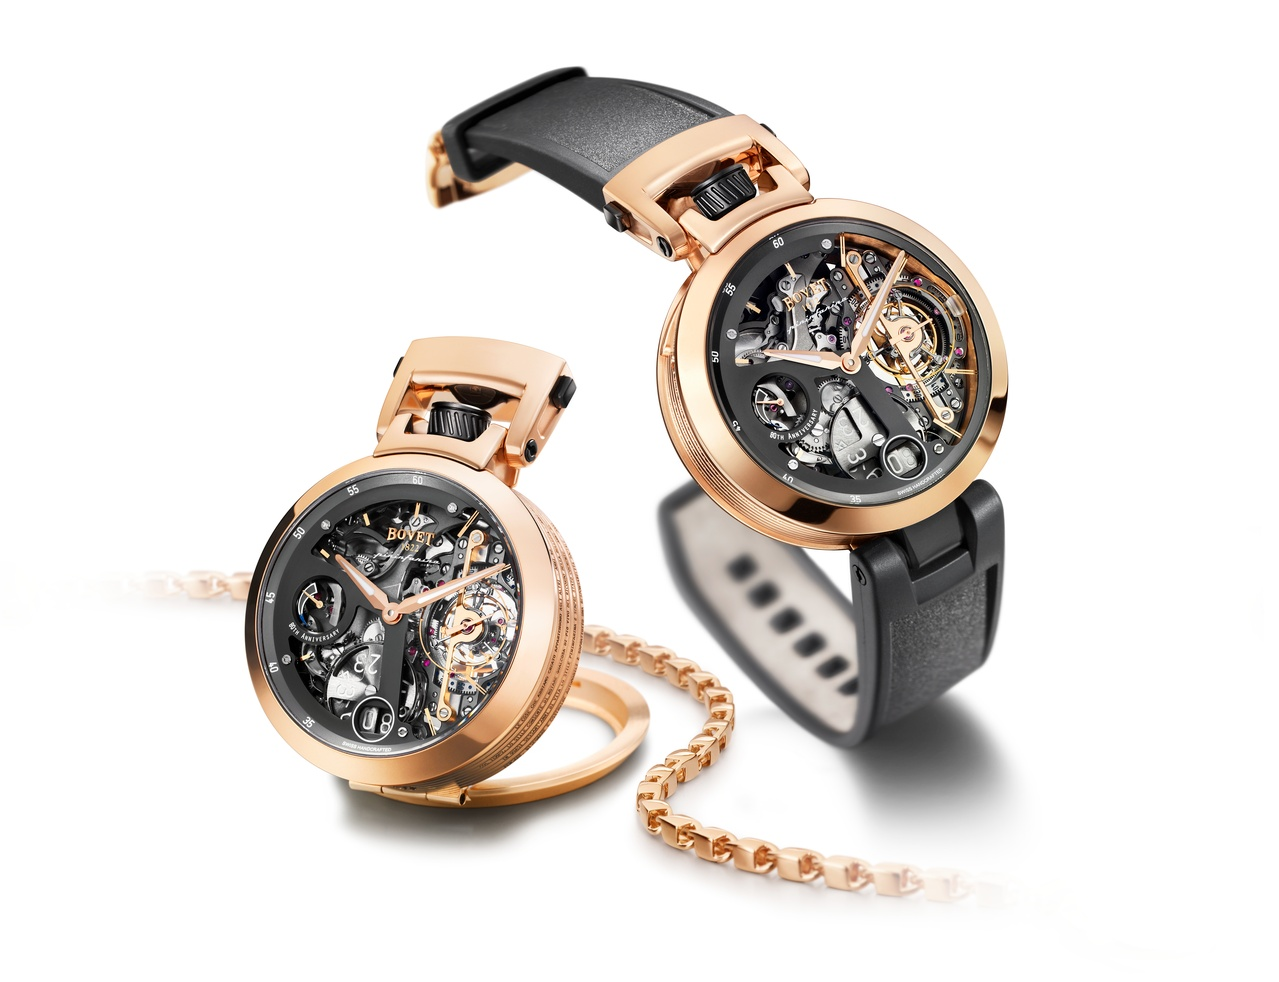 Bovet Watch   BOVET by Pininfarina   Ref. Nr.  TPIN002    Call 312-944-3100  | For Availability